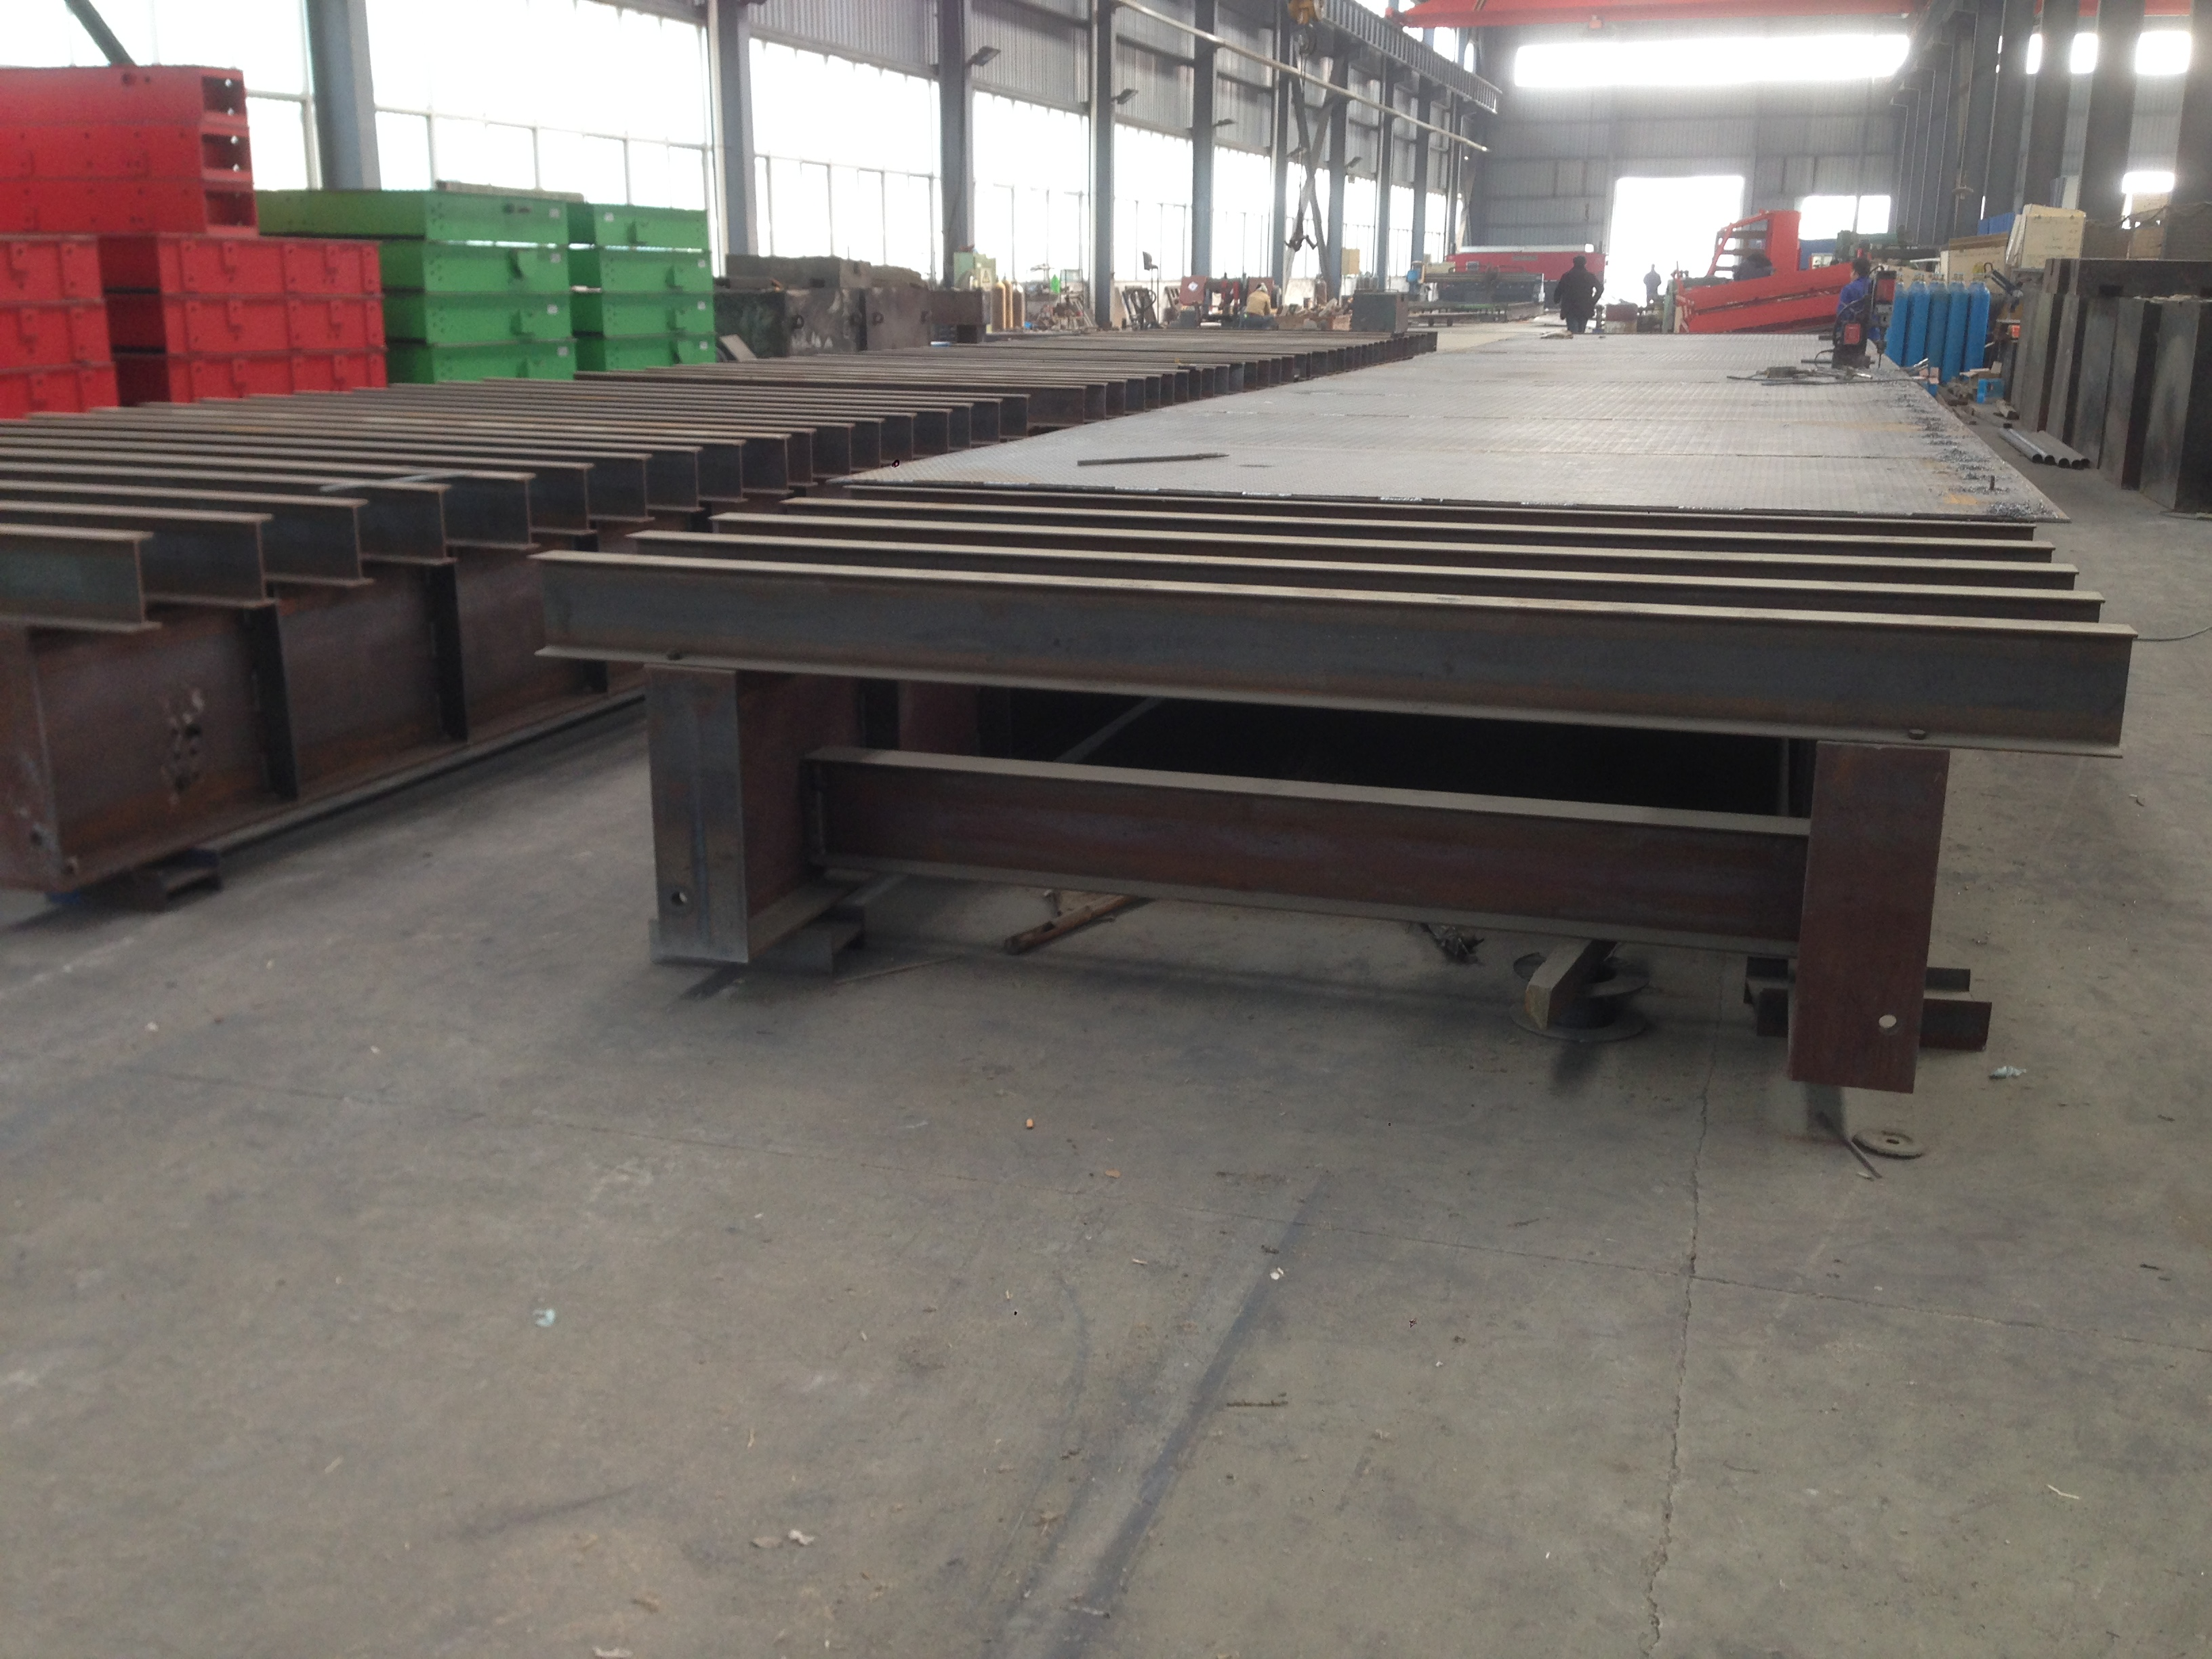 KYLOWEIGH Weighbridge-Pit type I beam structured-KW-WB-IBM0001